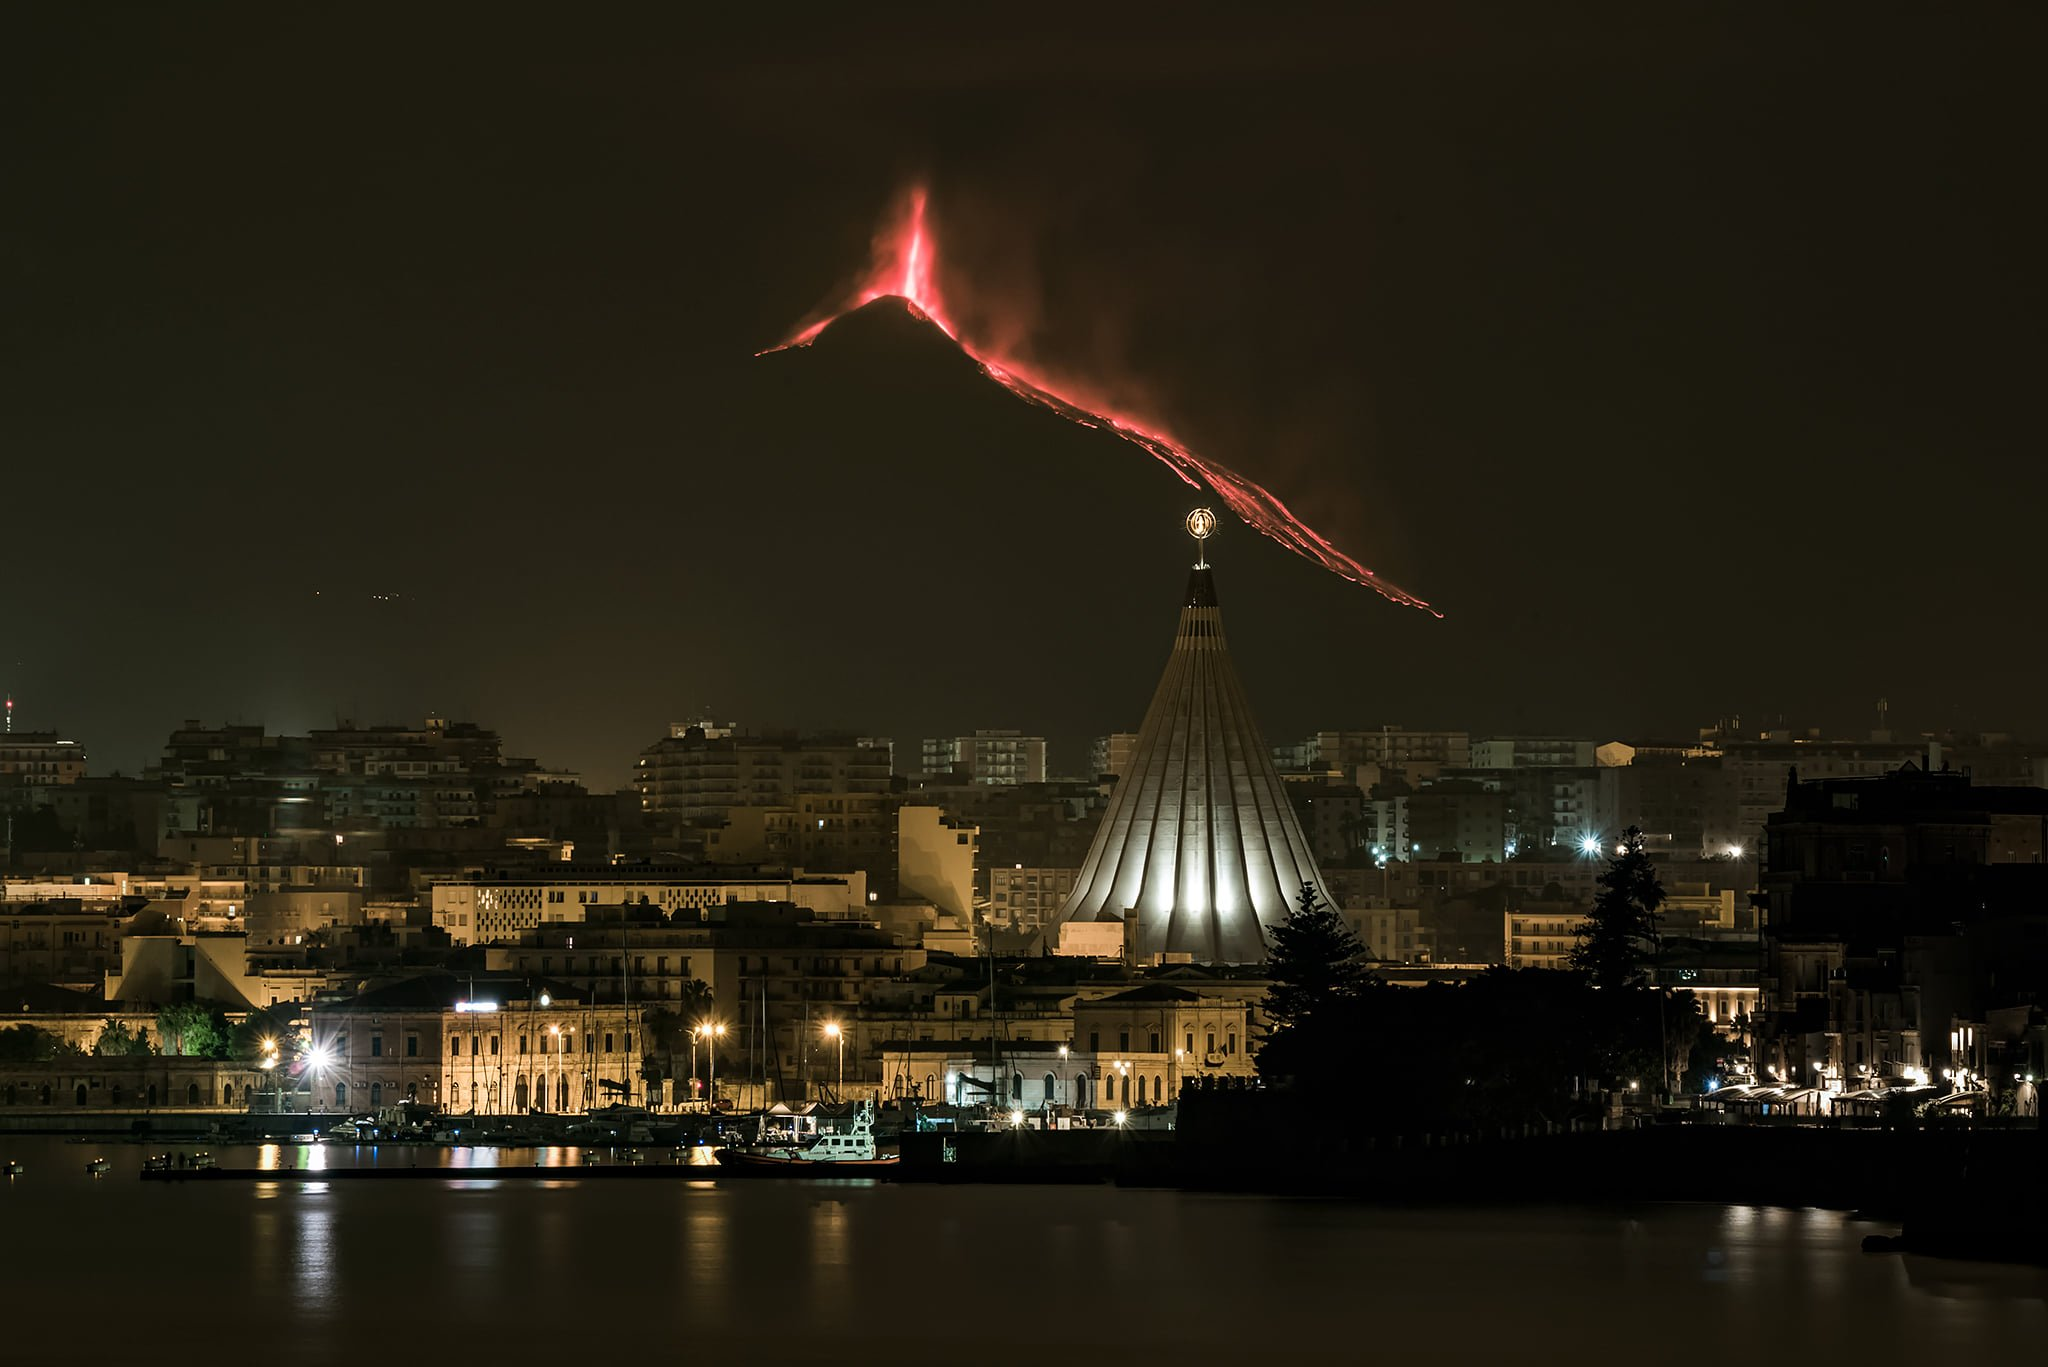 4th eruption, 20th feb 2021. View from city Siracusa, Massimo Tamajo